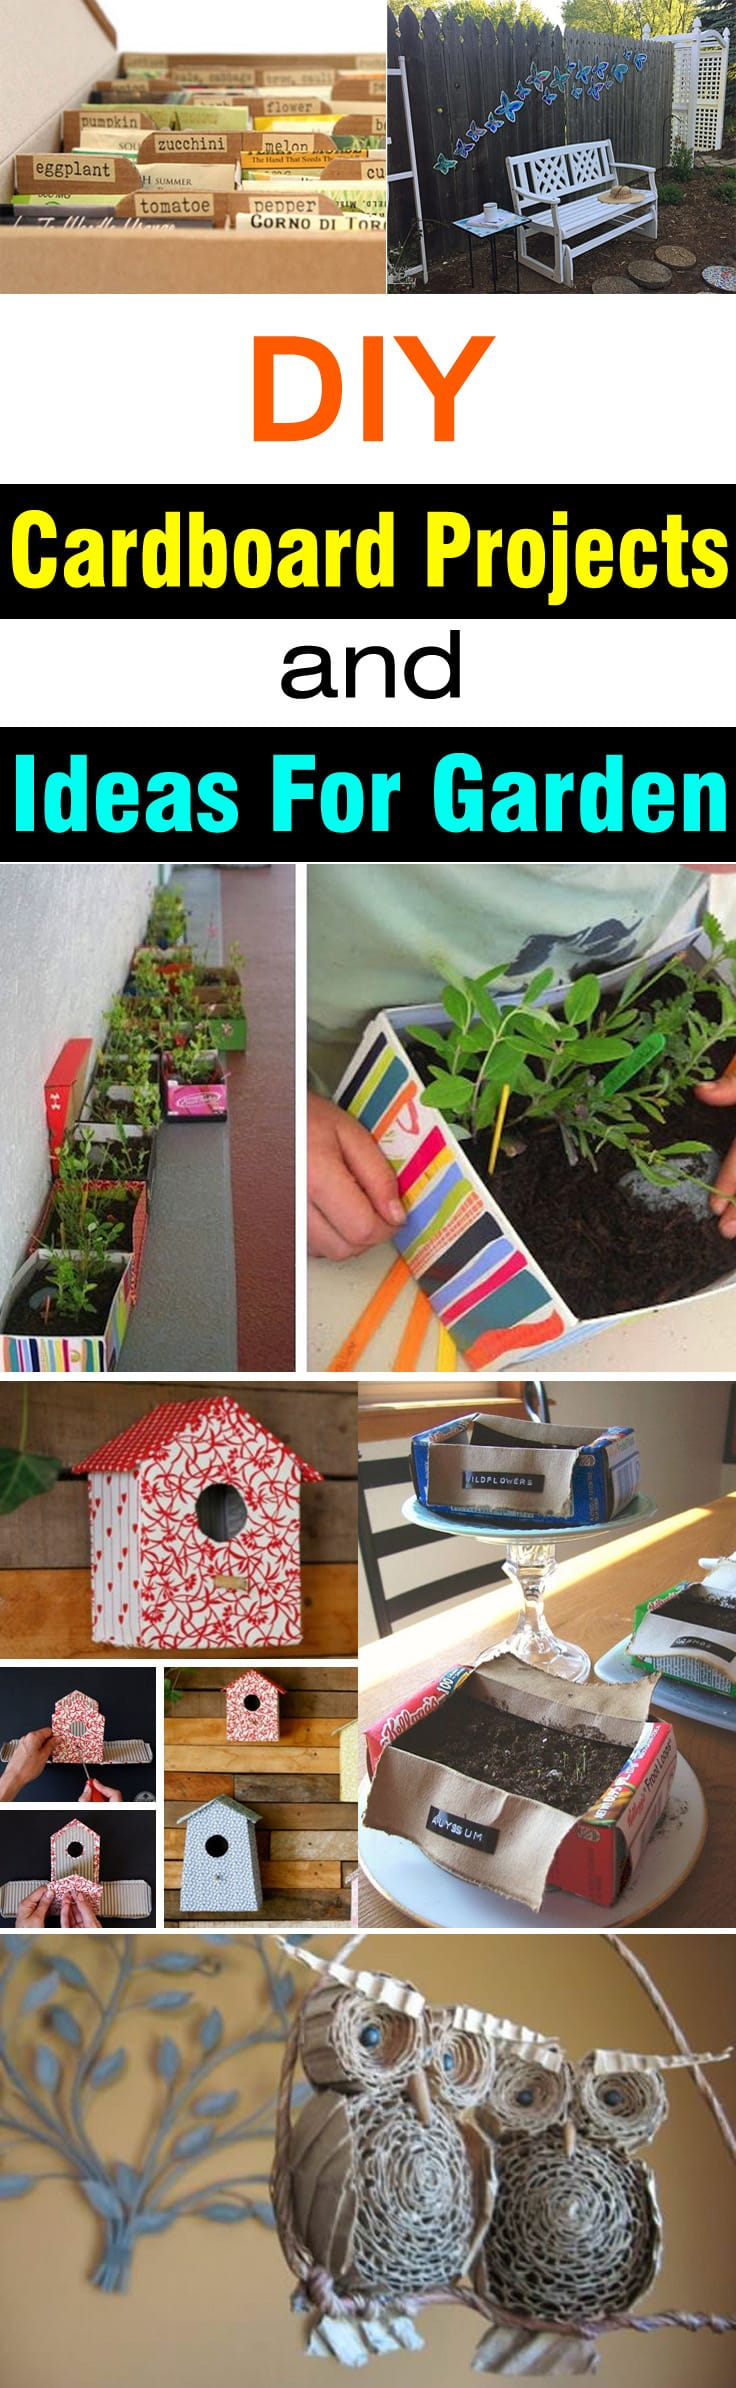 Diy cardboard projects ideas for garden balcony garden web if you love to recycle and have cardboards dont throw them workwithnaturefo